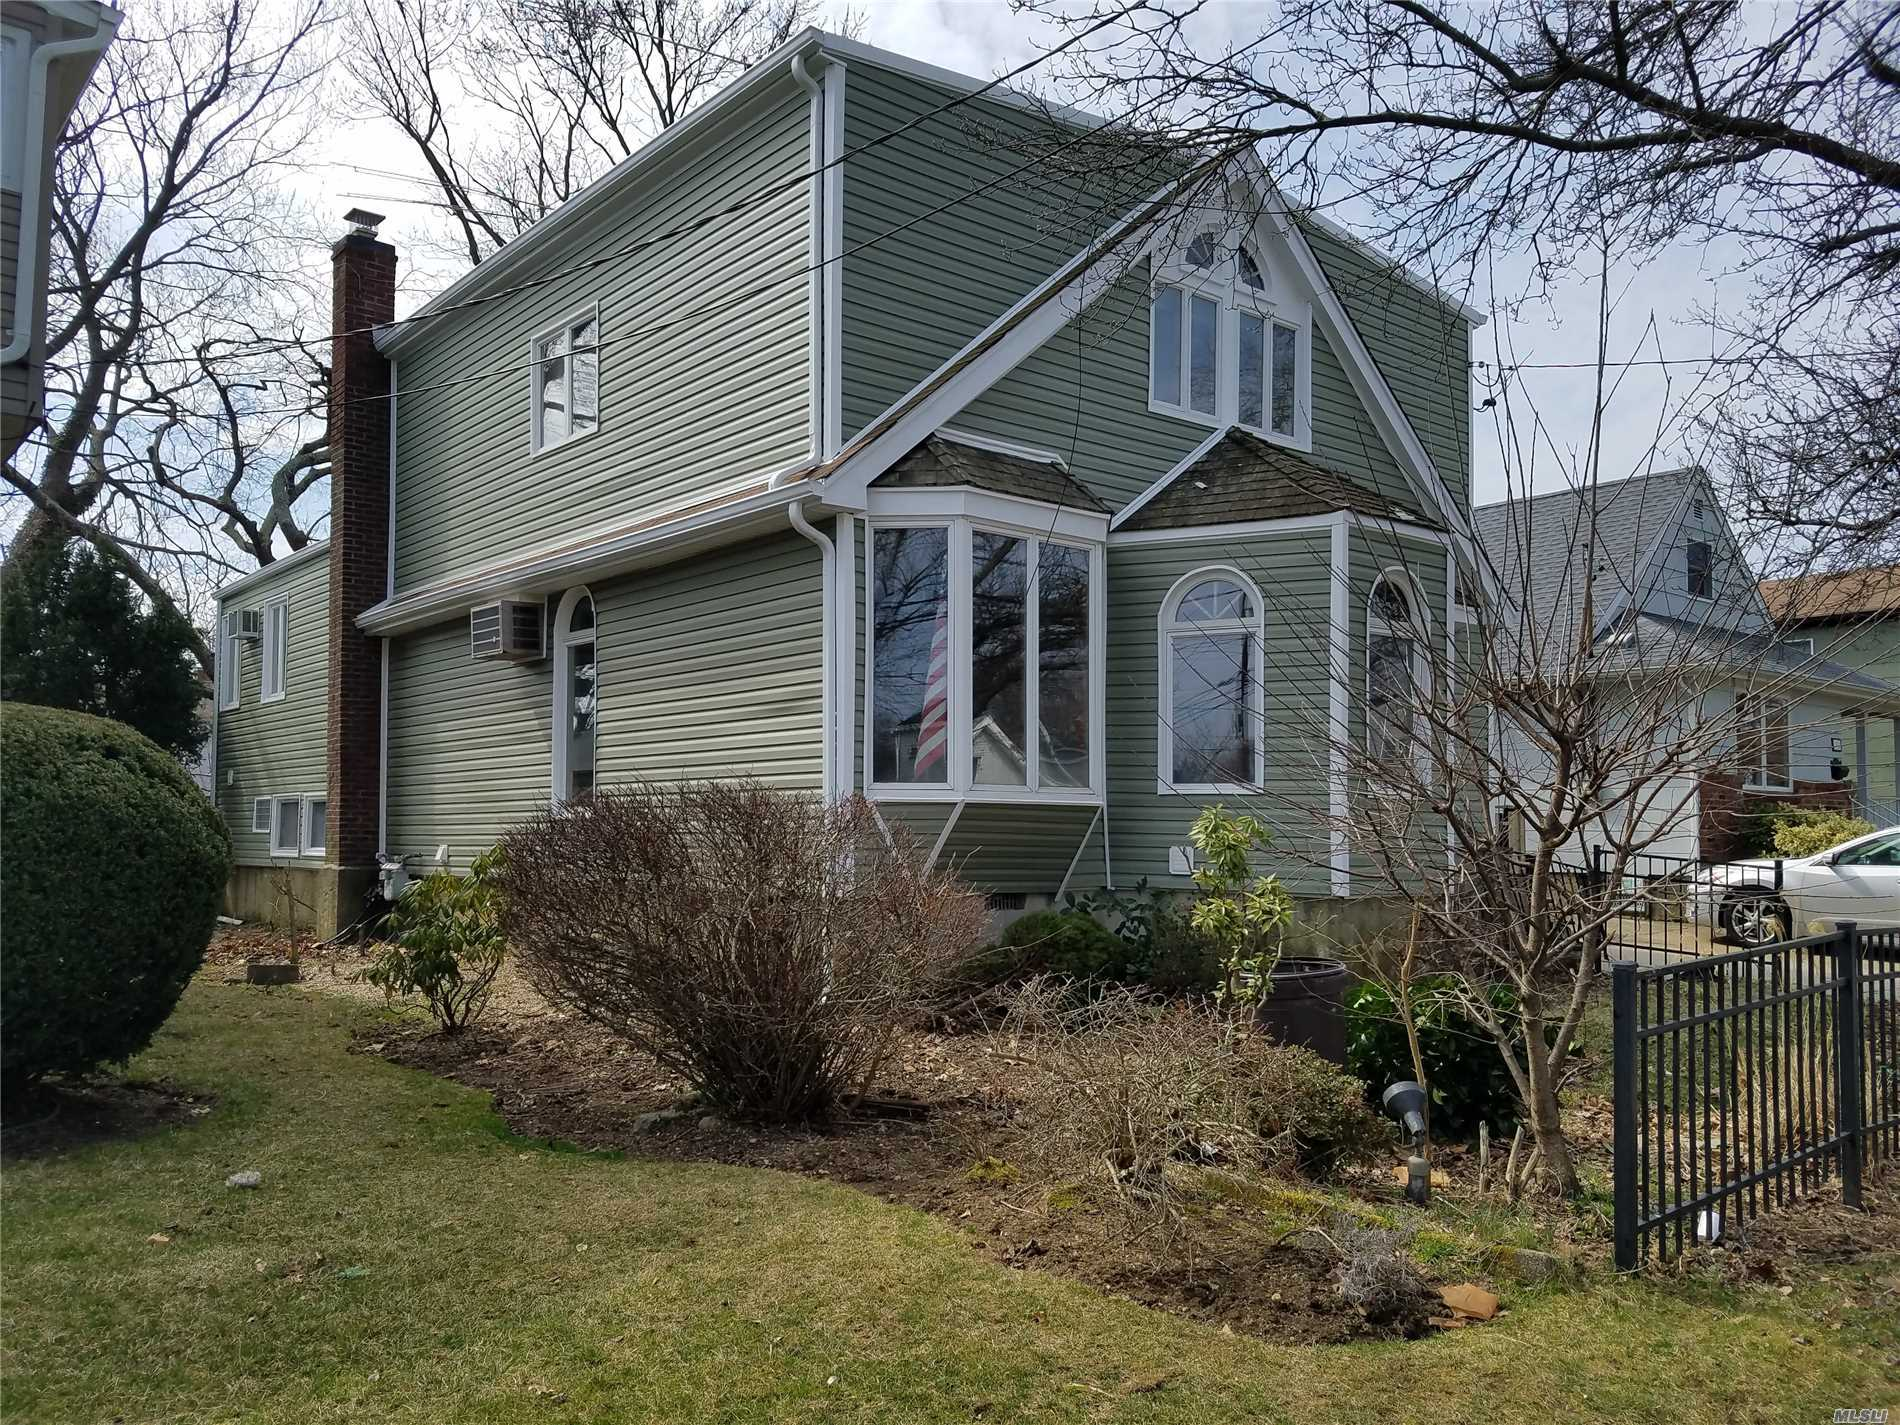 Large Split Level Home In Beautifull Baldwin Harbor. Great House In A Great Neighborhood, Featuring 4 Bedrooms, 2.5 Bathrooms, Finished Basement With 2 Rooms And A 1/2 Bath, Separated Entrance, Rear Wooden Deck, Baldwin Schools, Close To All.